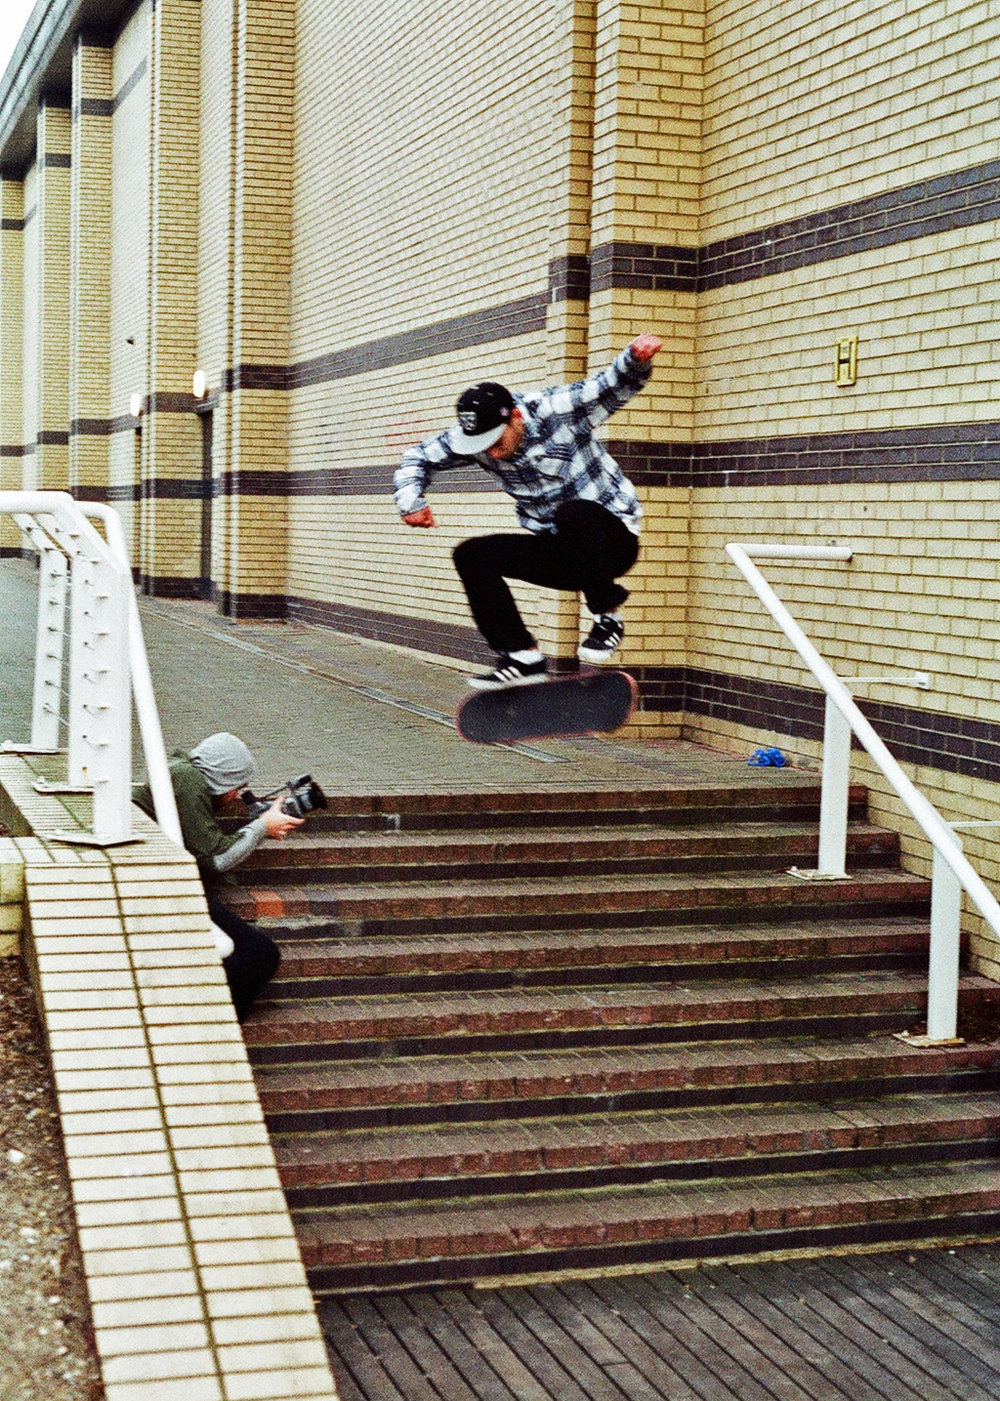 will-thomson-kickflip.jpg